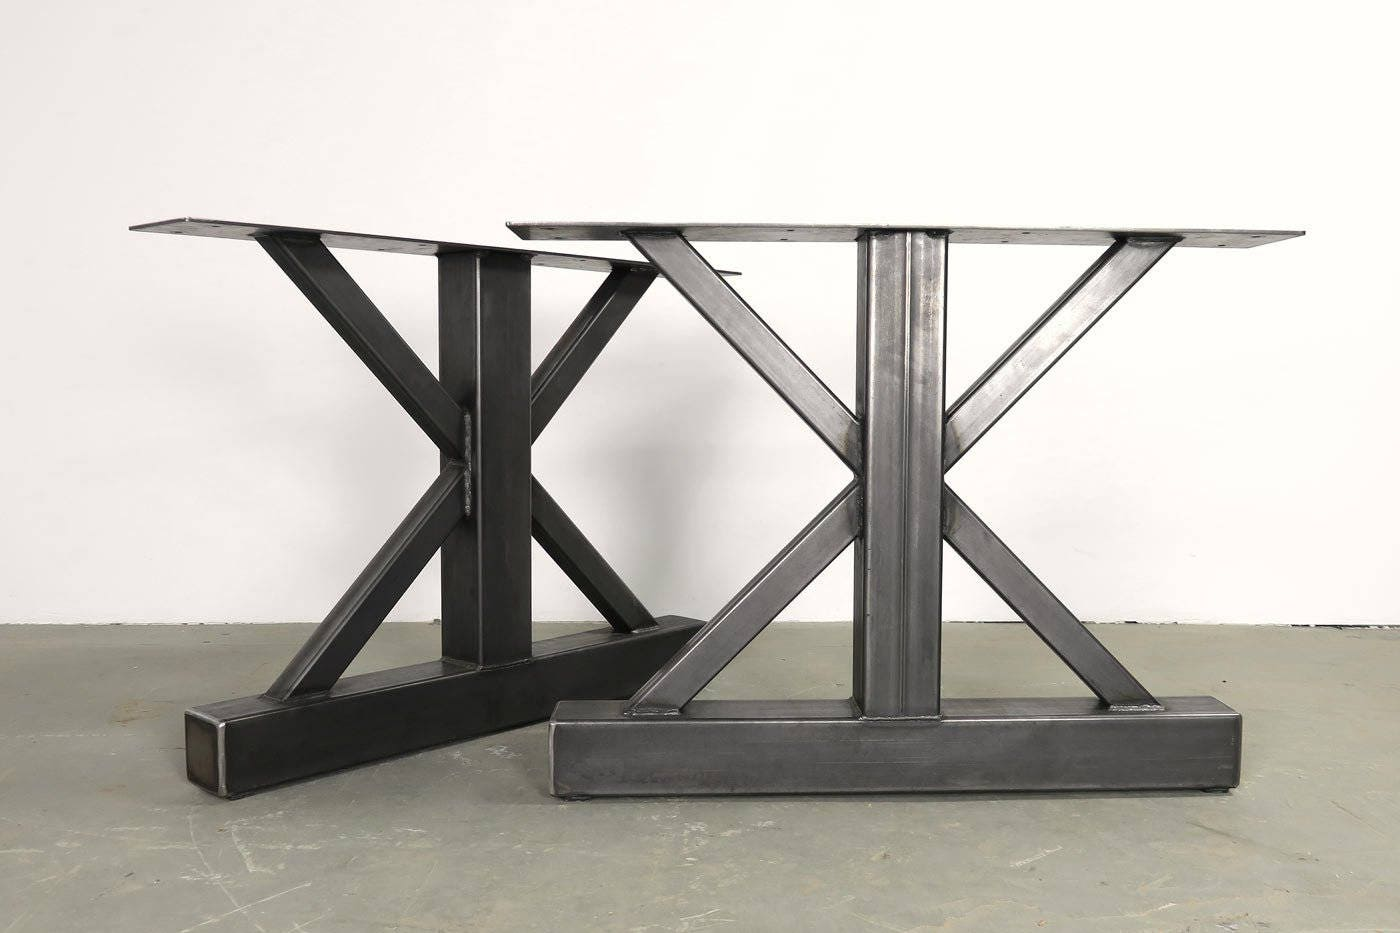 Metal table legs trestle style metal legs industrial table Metal table base